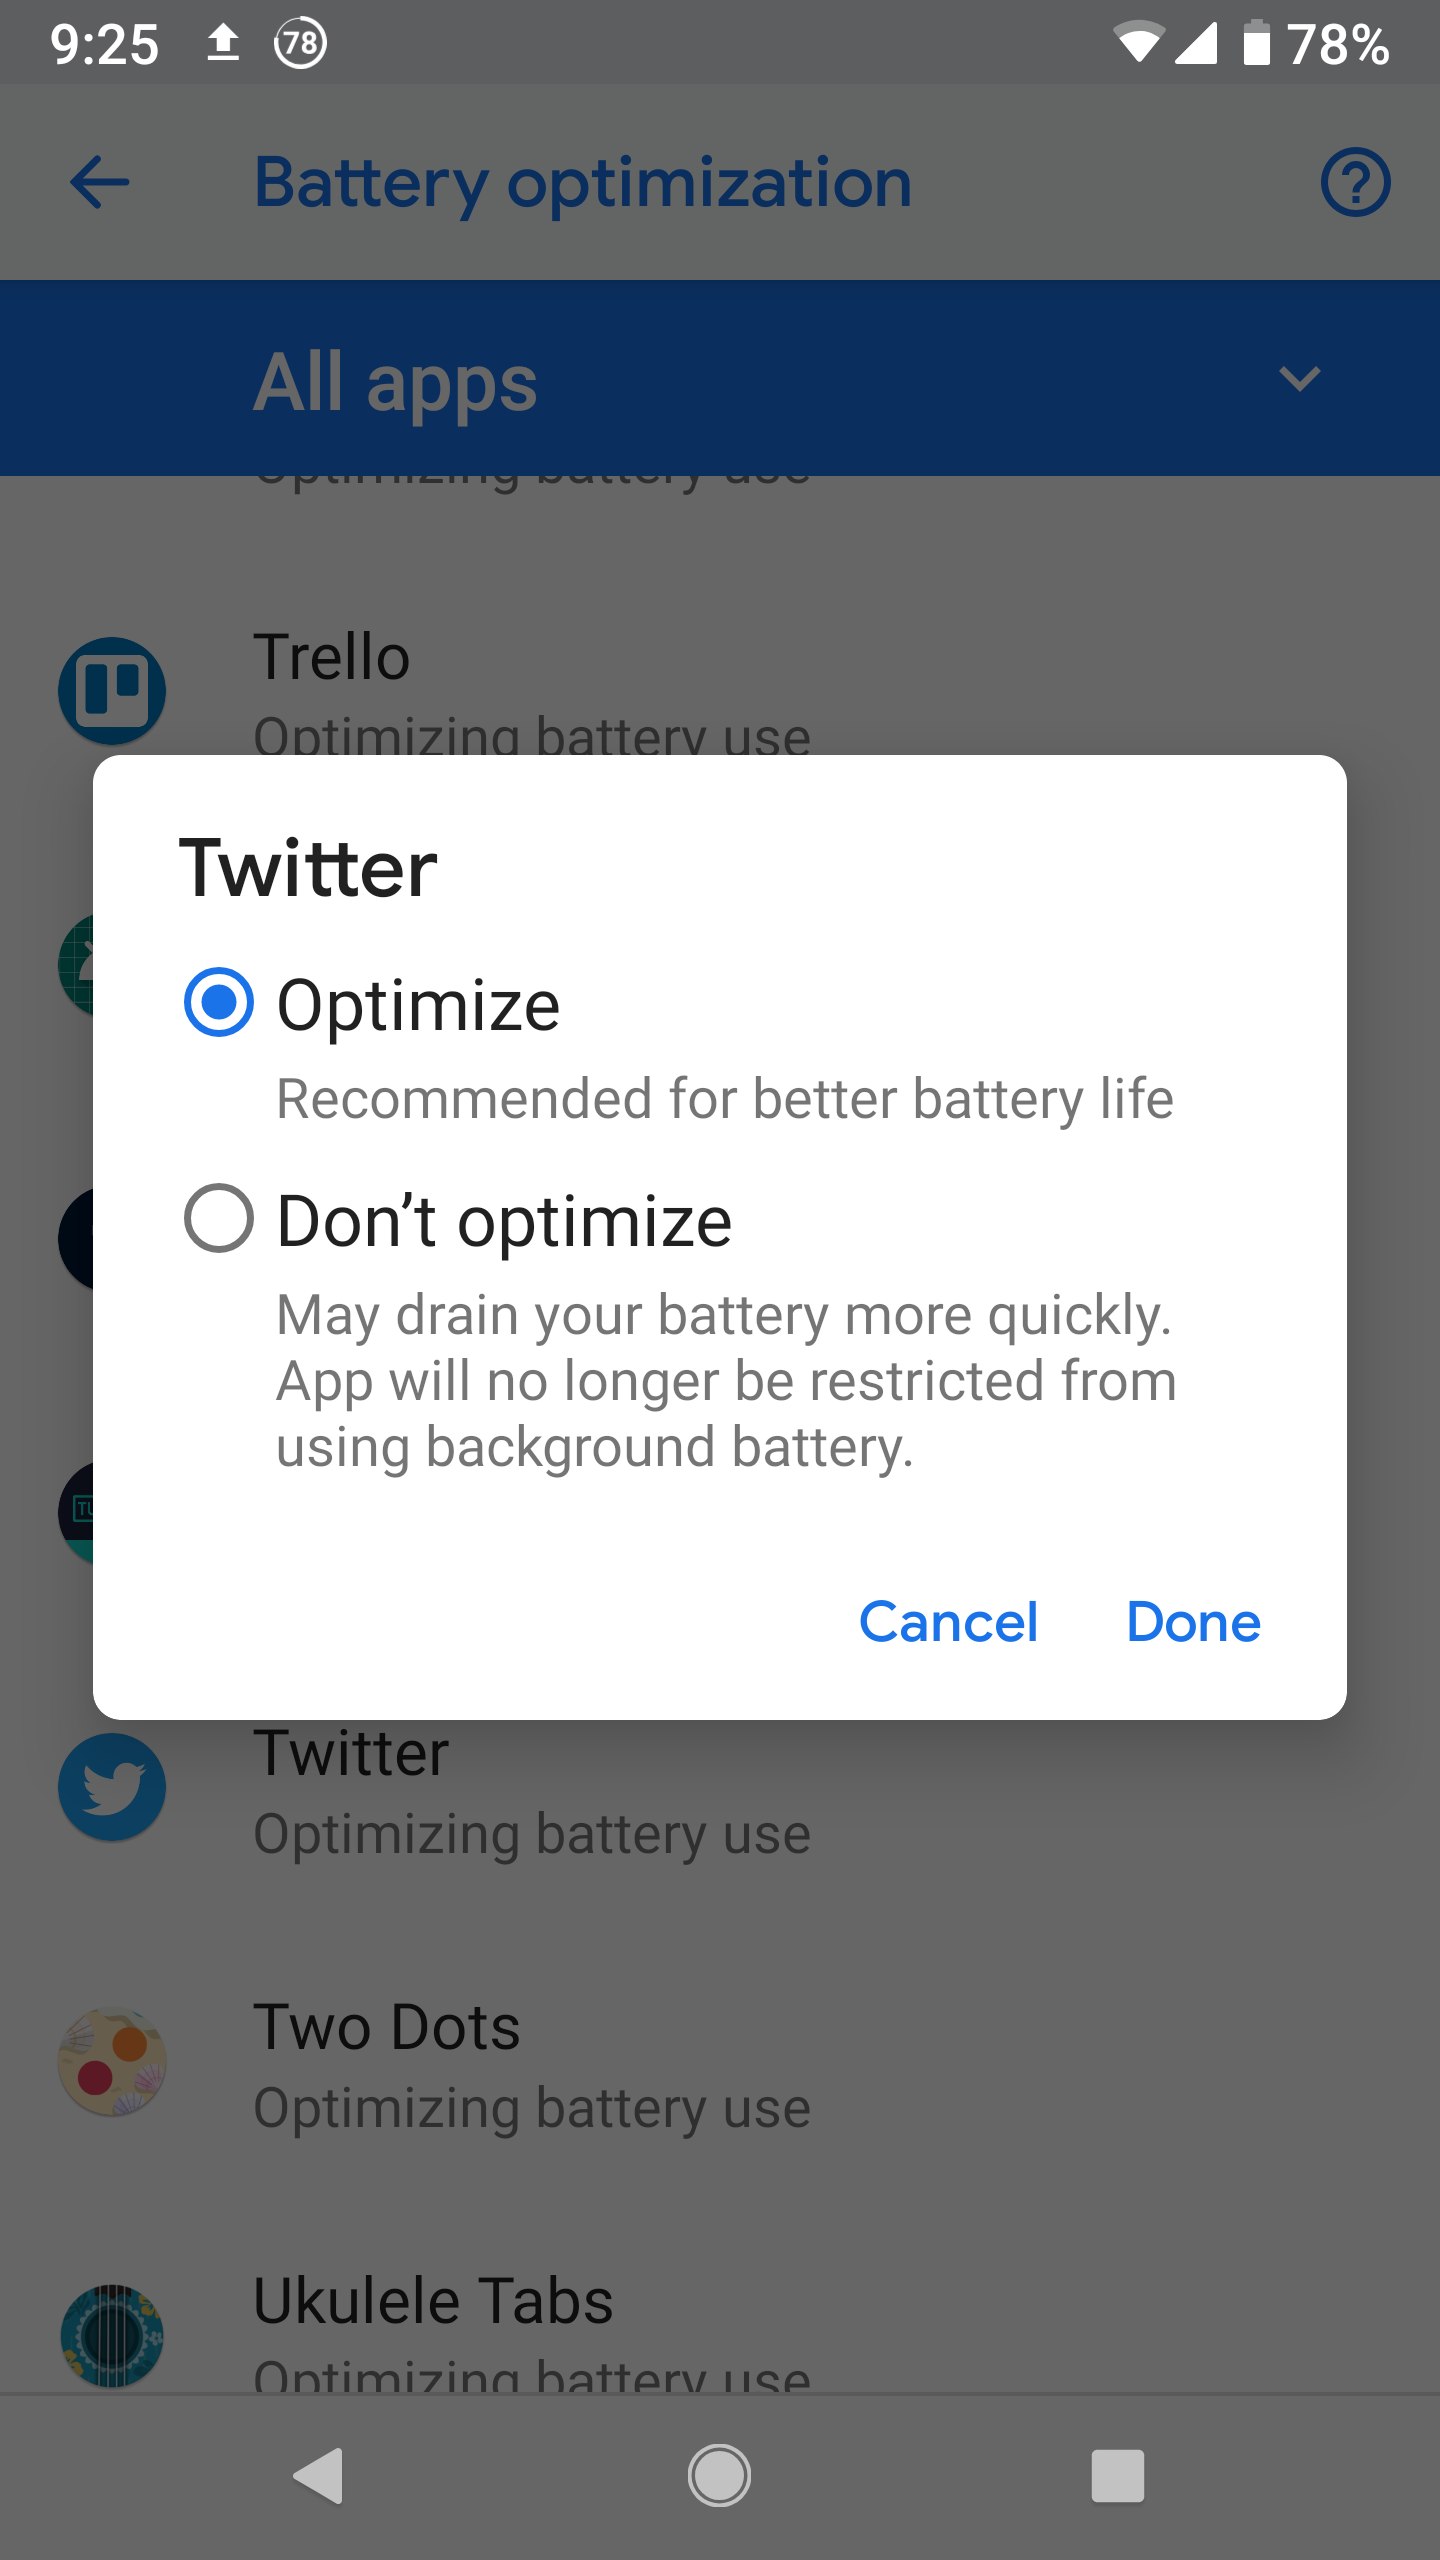 Handy tips on how to monitor and save battery life on your